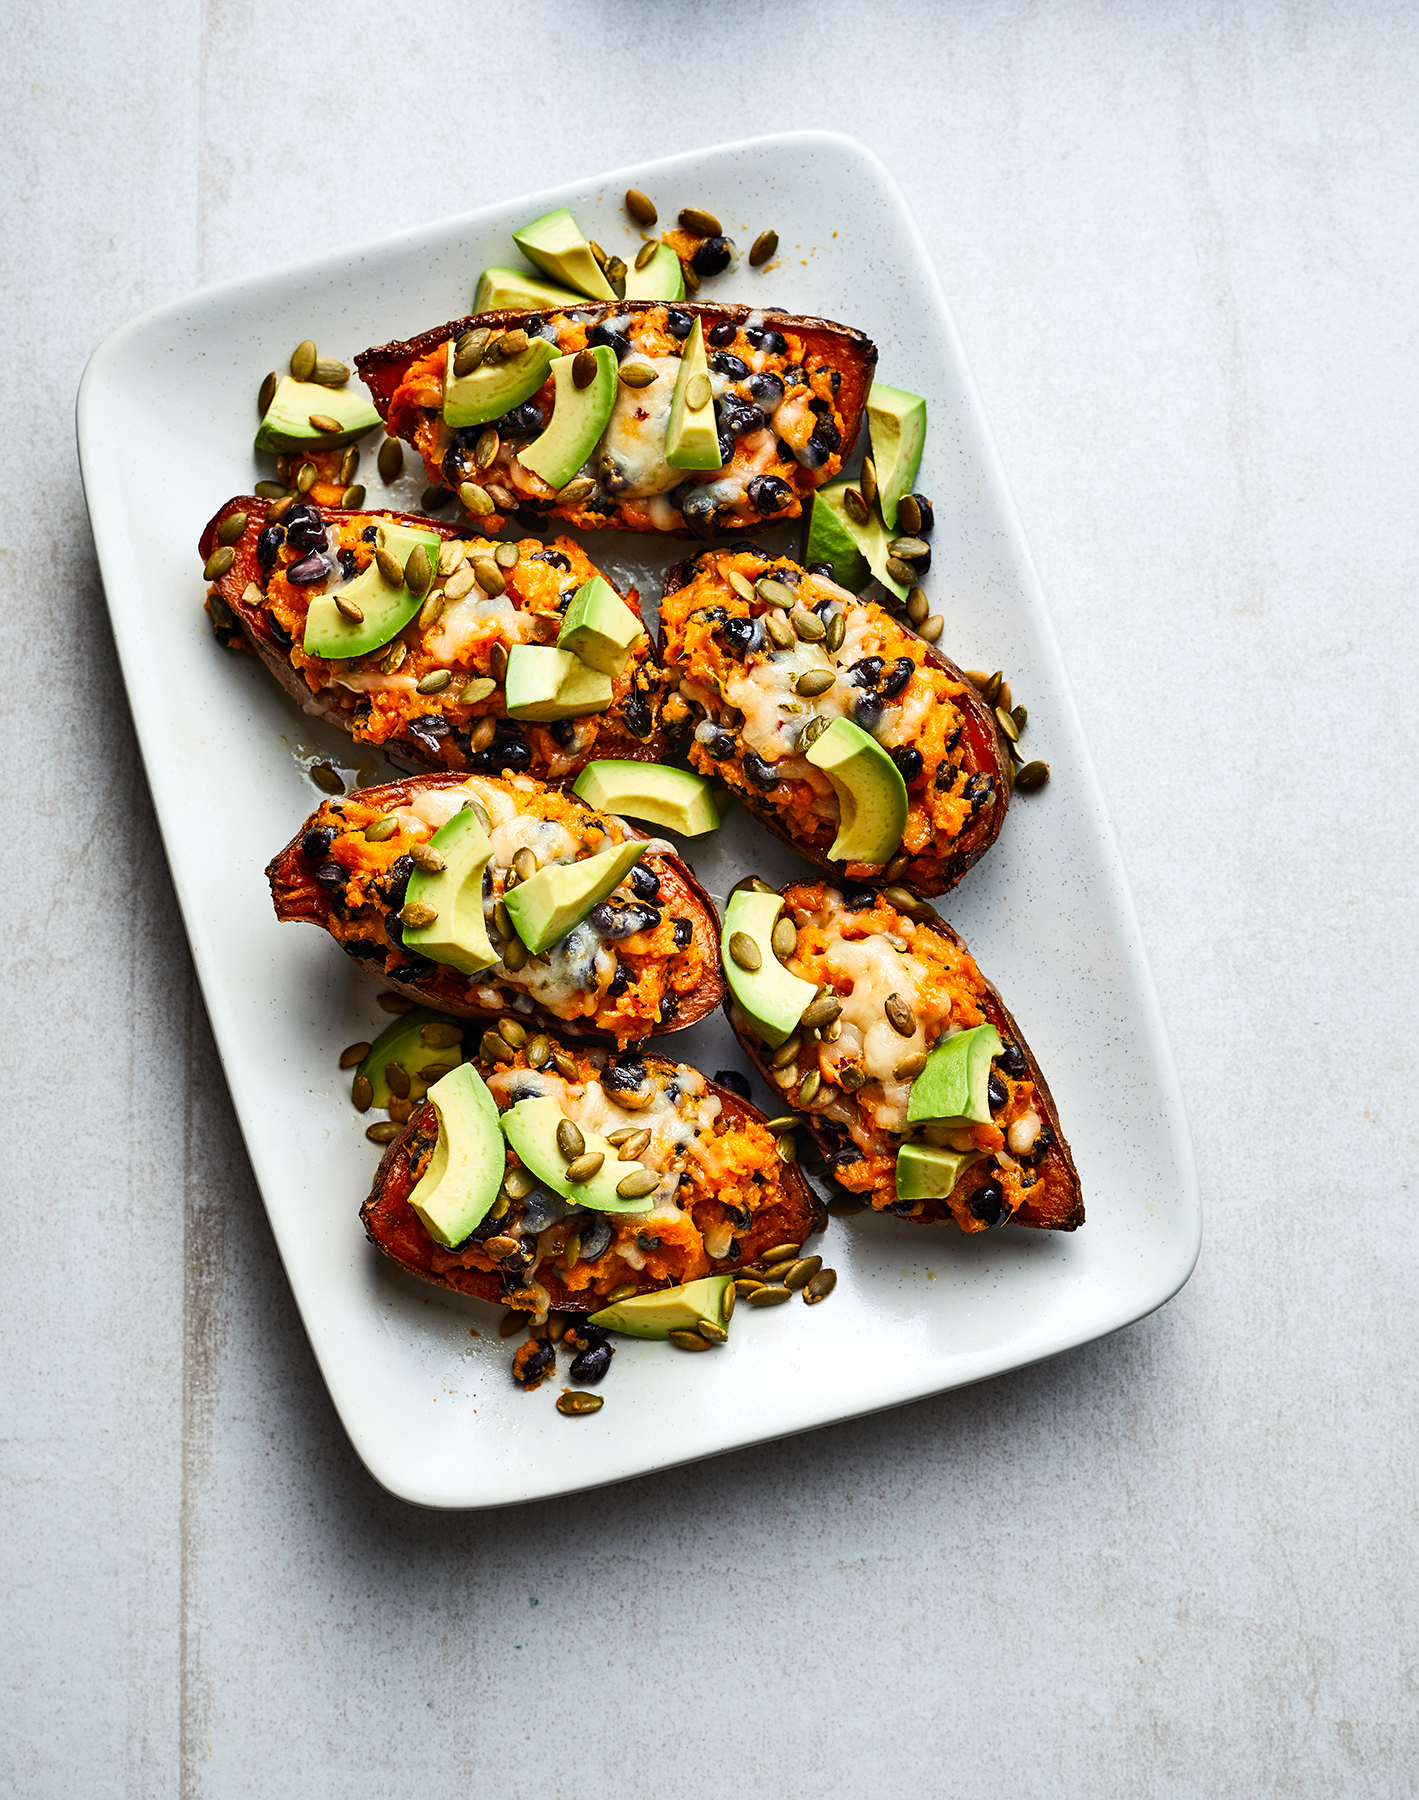 Cheesy Twice-Baked Sweet Potatoes With Black Beans and Avocado